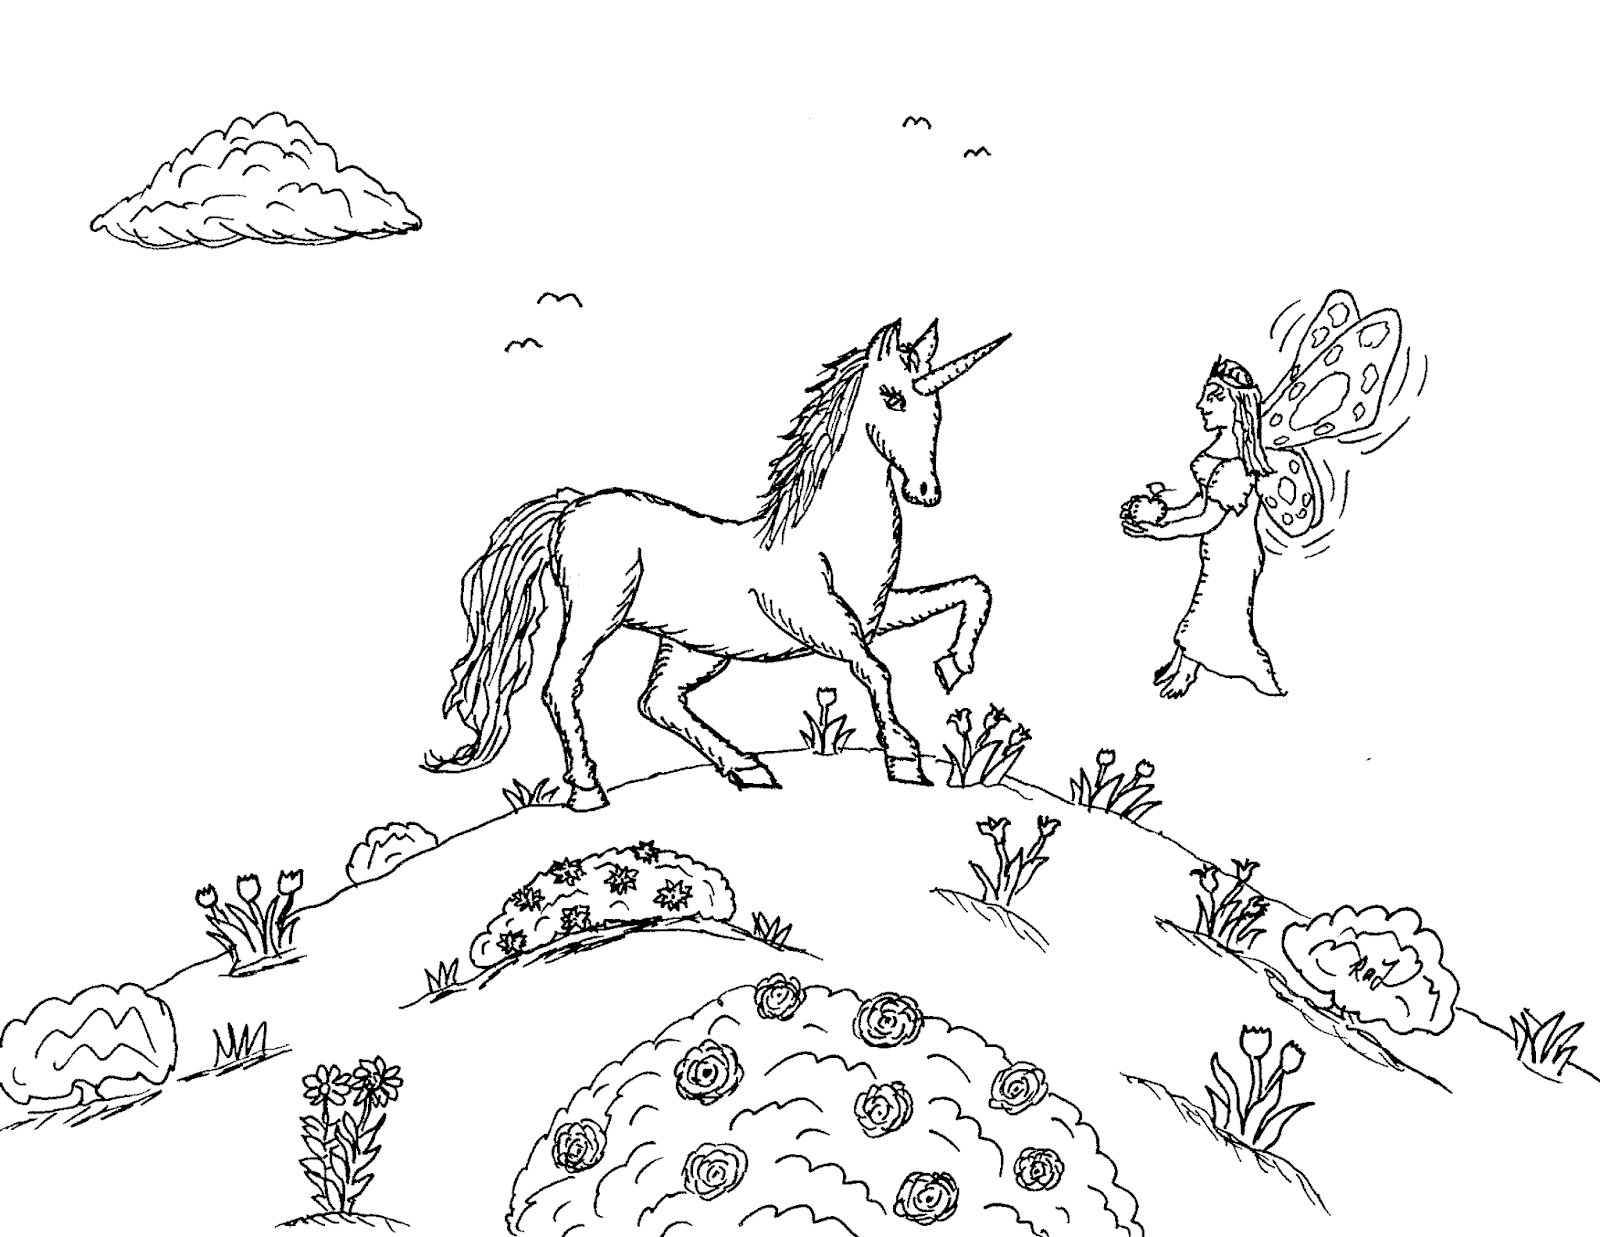 Robin's Great Coloring Pages: Unicorn with Fairy Princess